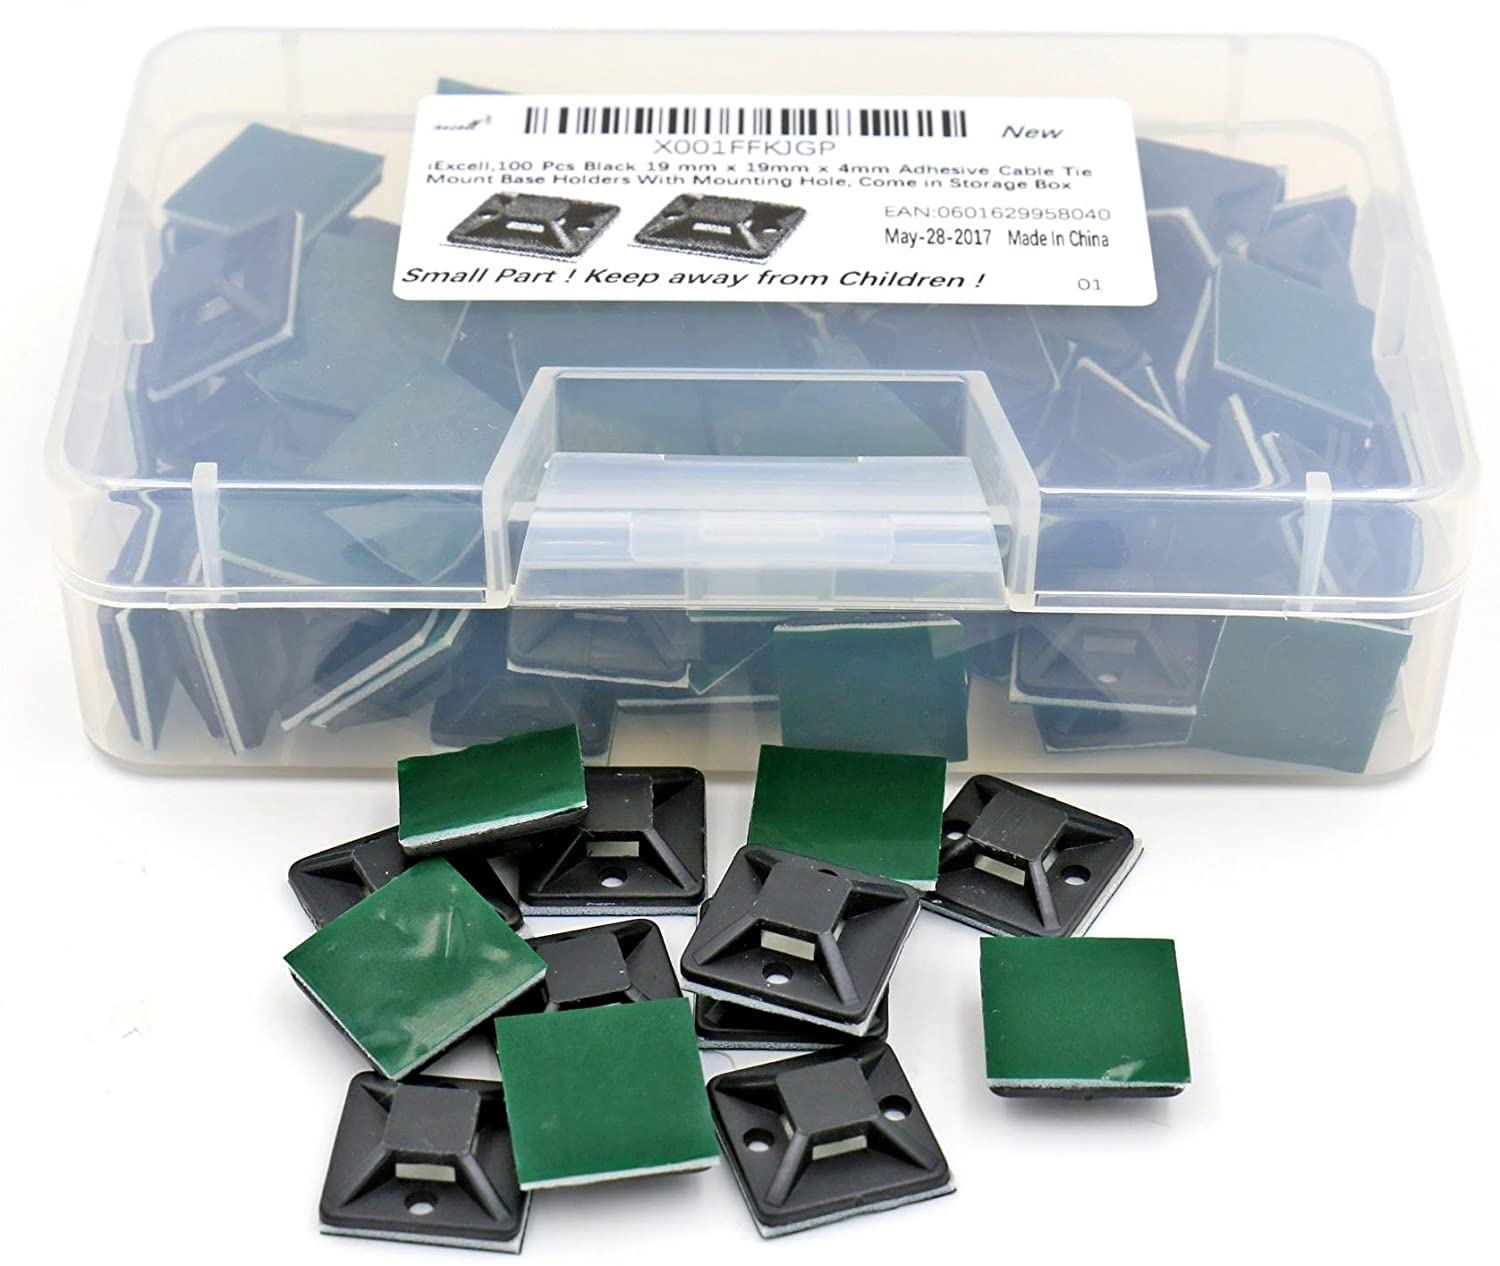 iExcell 100 Pcs Black 19 mm x 19mm x 4mm Adhesive Cable Tie Mount Base Holders With Mounting Hole Come in a Storage Box